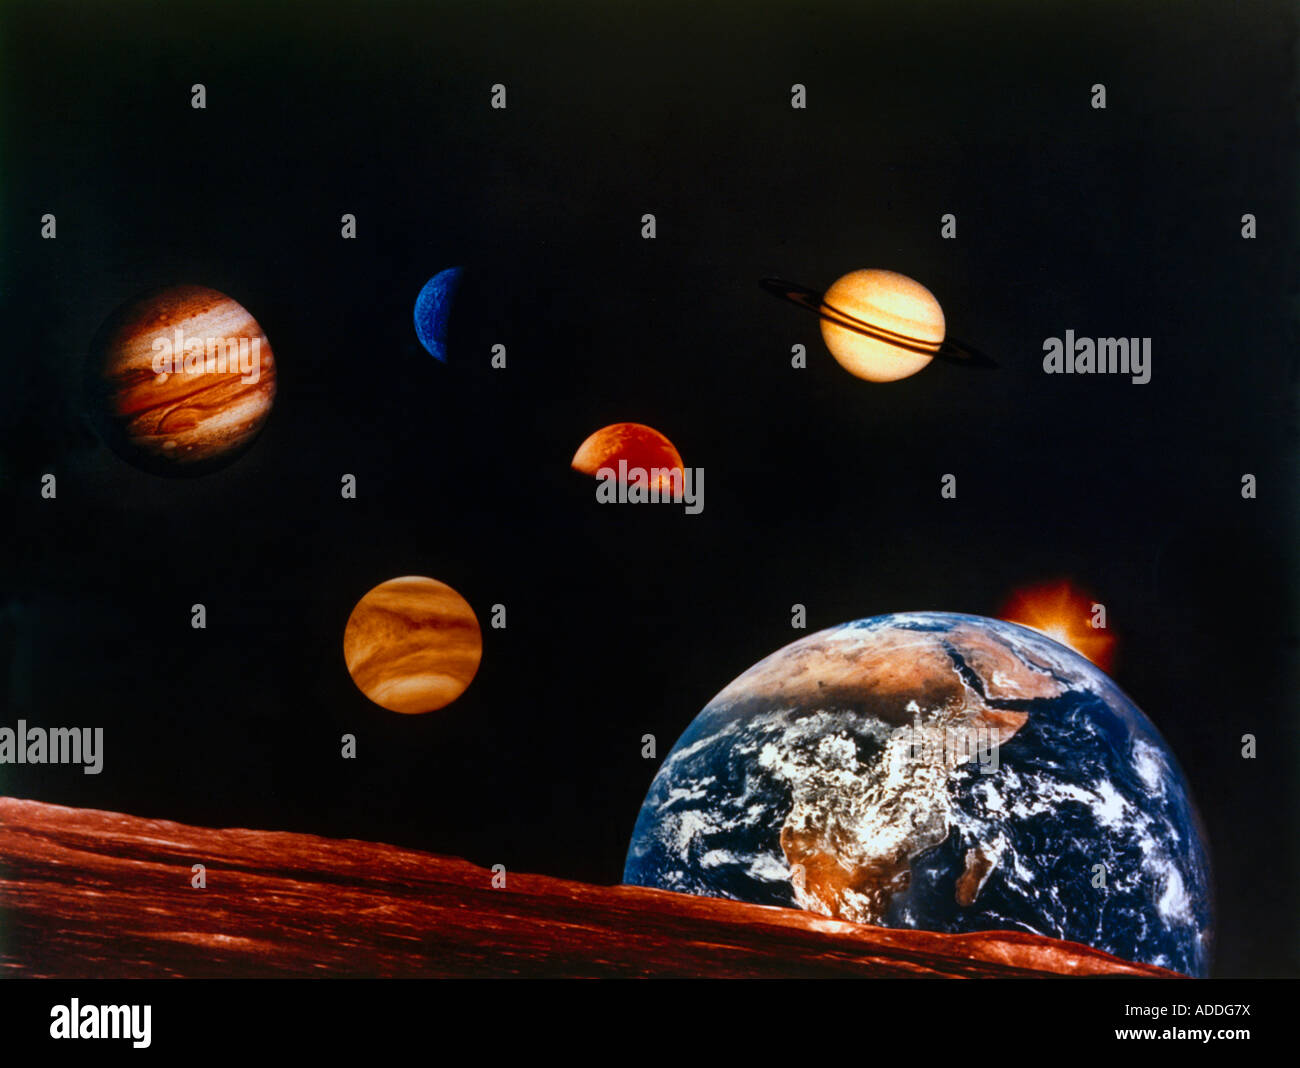 Artwork of Solar System - Stock Image